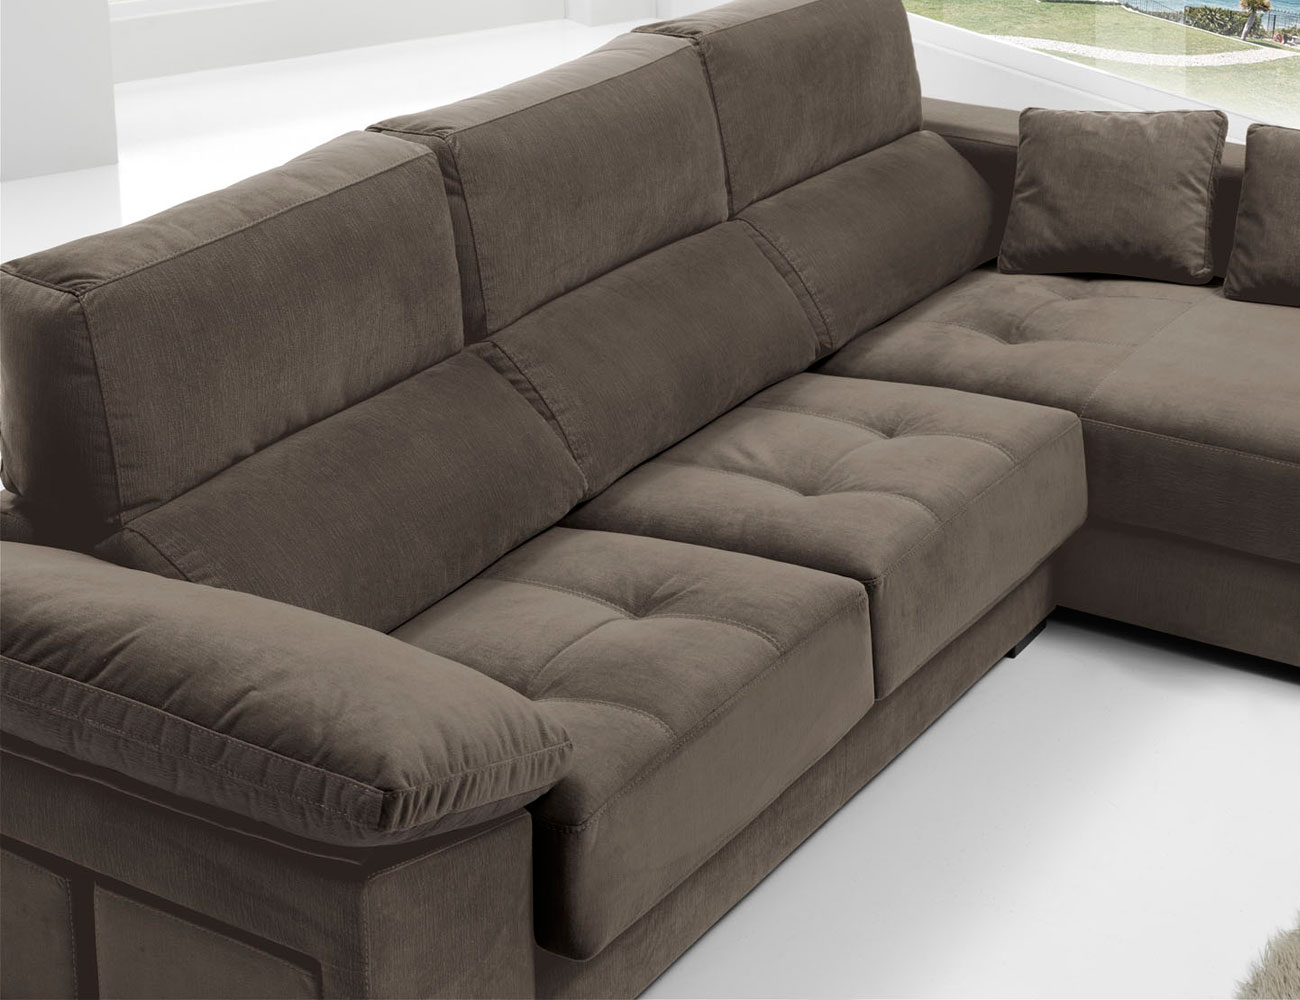 Sofa chaiselongue anti manchas bering pouf 241